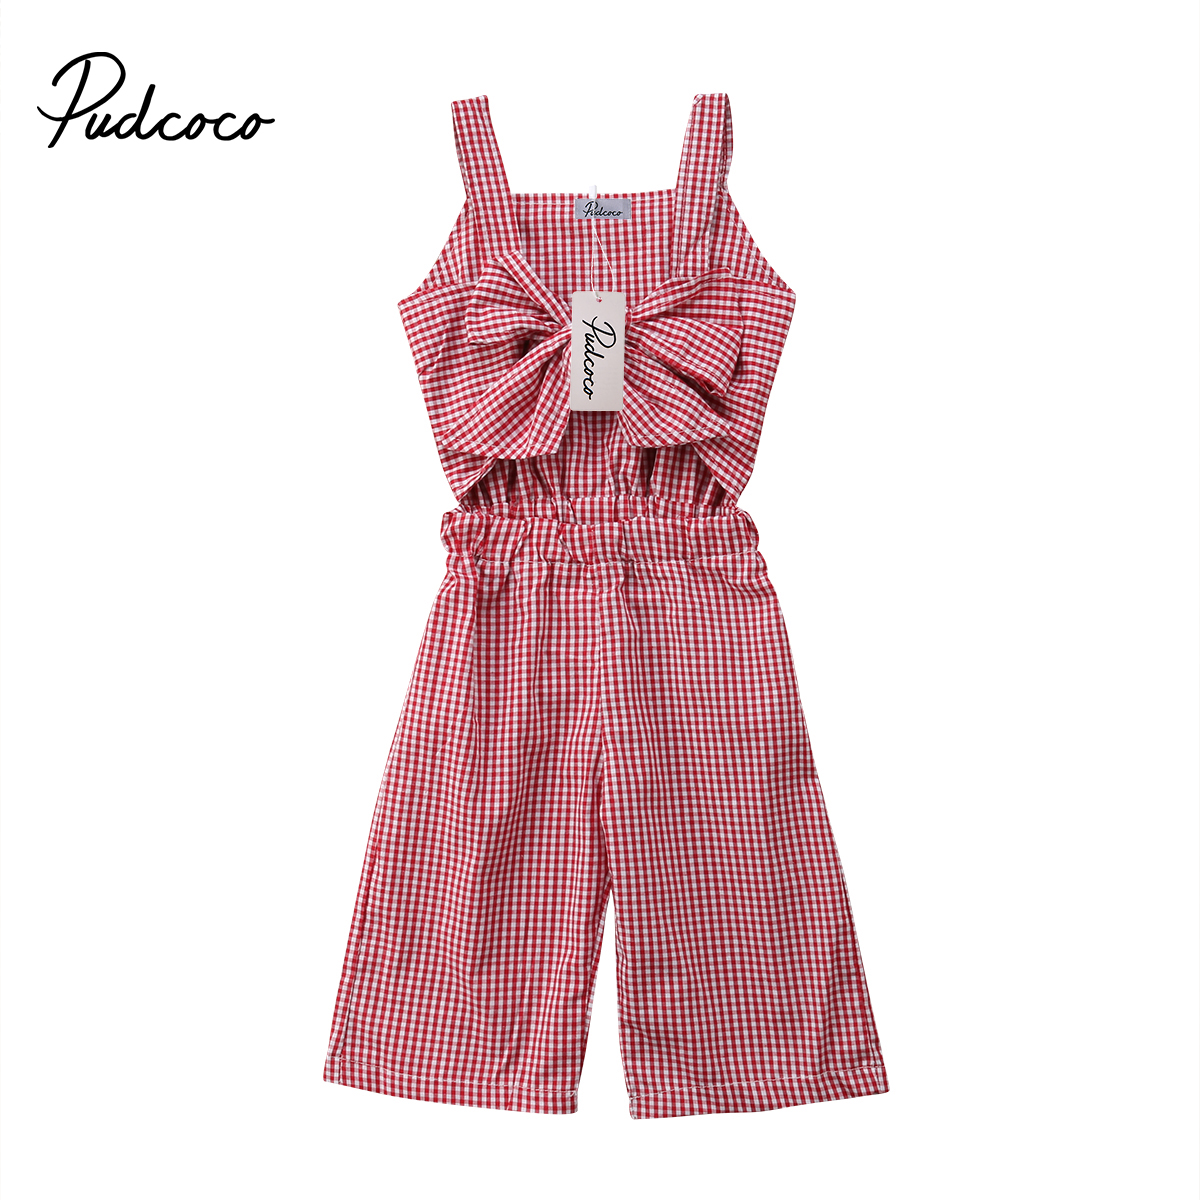 Pudcoco New Kids Baby Girls Plaid Bowknot Chest Strap Elastic Waist Overalls Pants Romper Jumpsuit Sunsuit Clothes Outfits